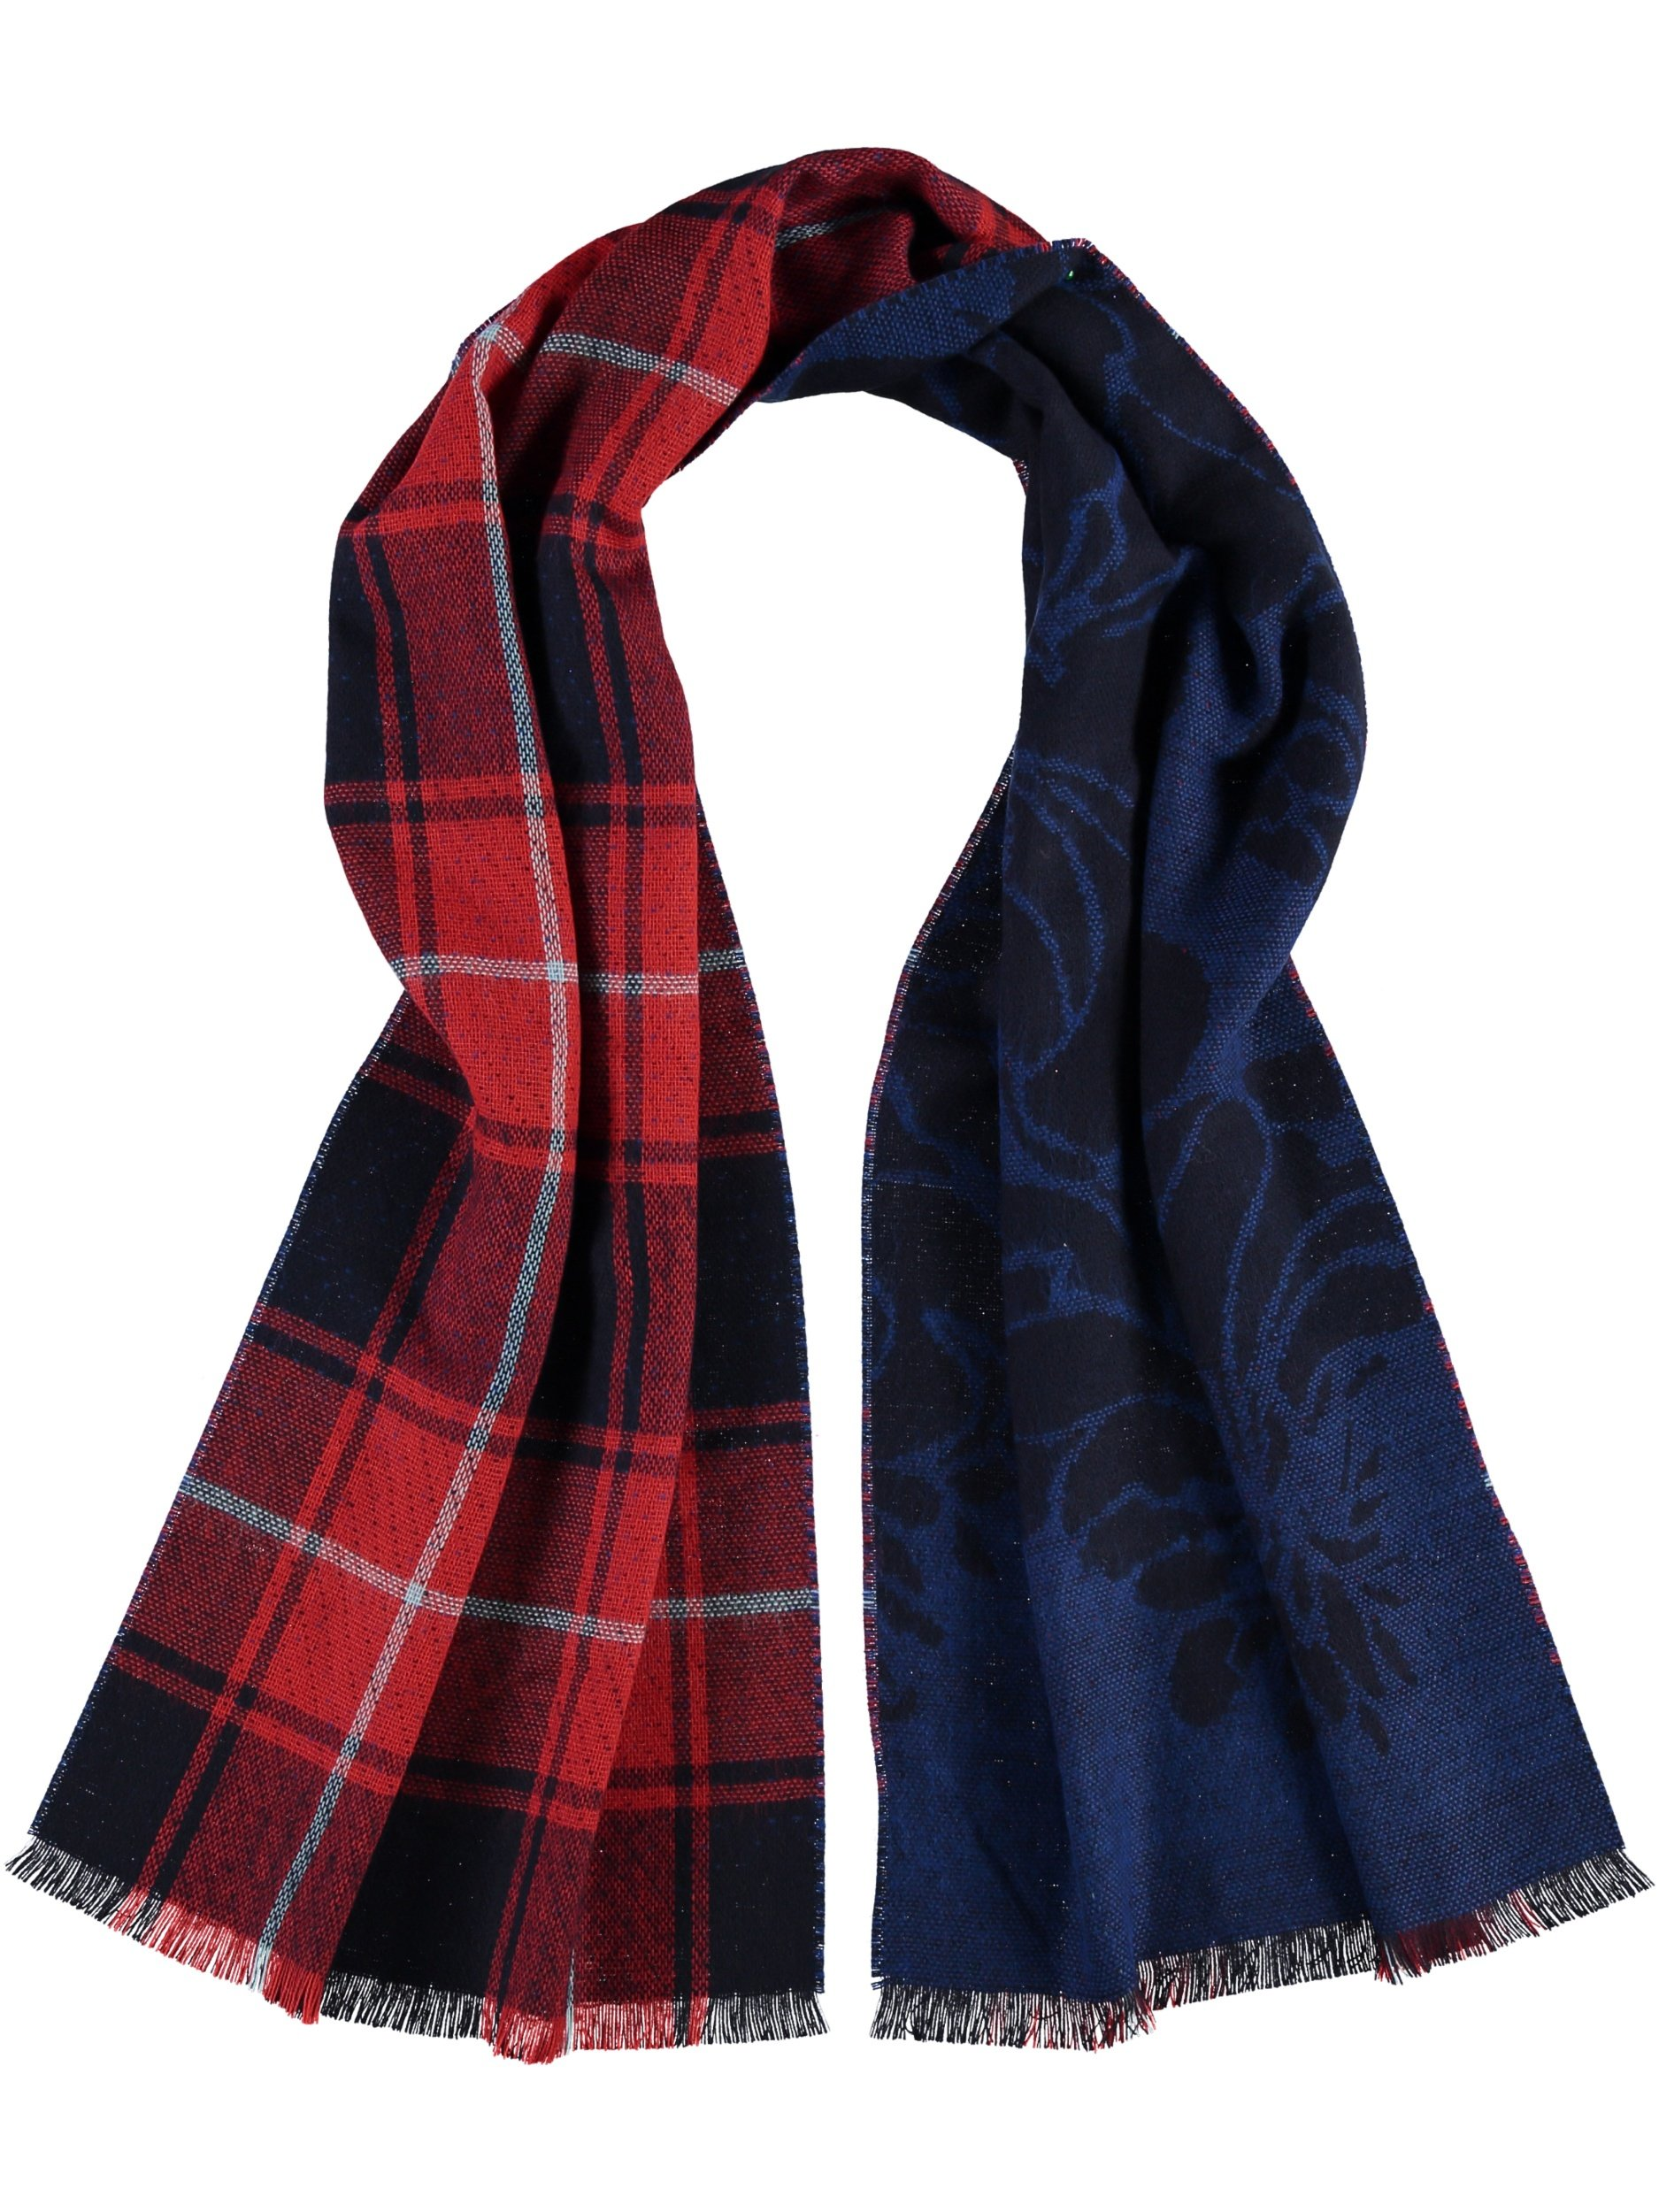 Shawl: Royal Blue & Red Plaid- $26.00 Polyacrylic, Made in Germany 77189200825 Several colour variations available in store